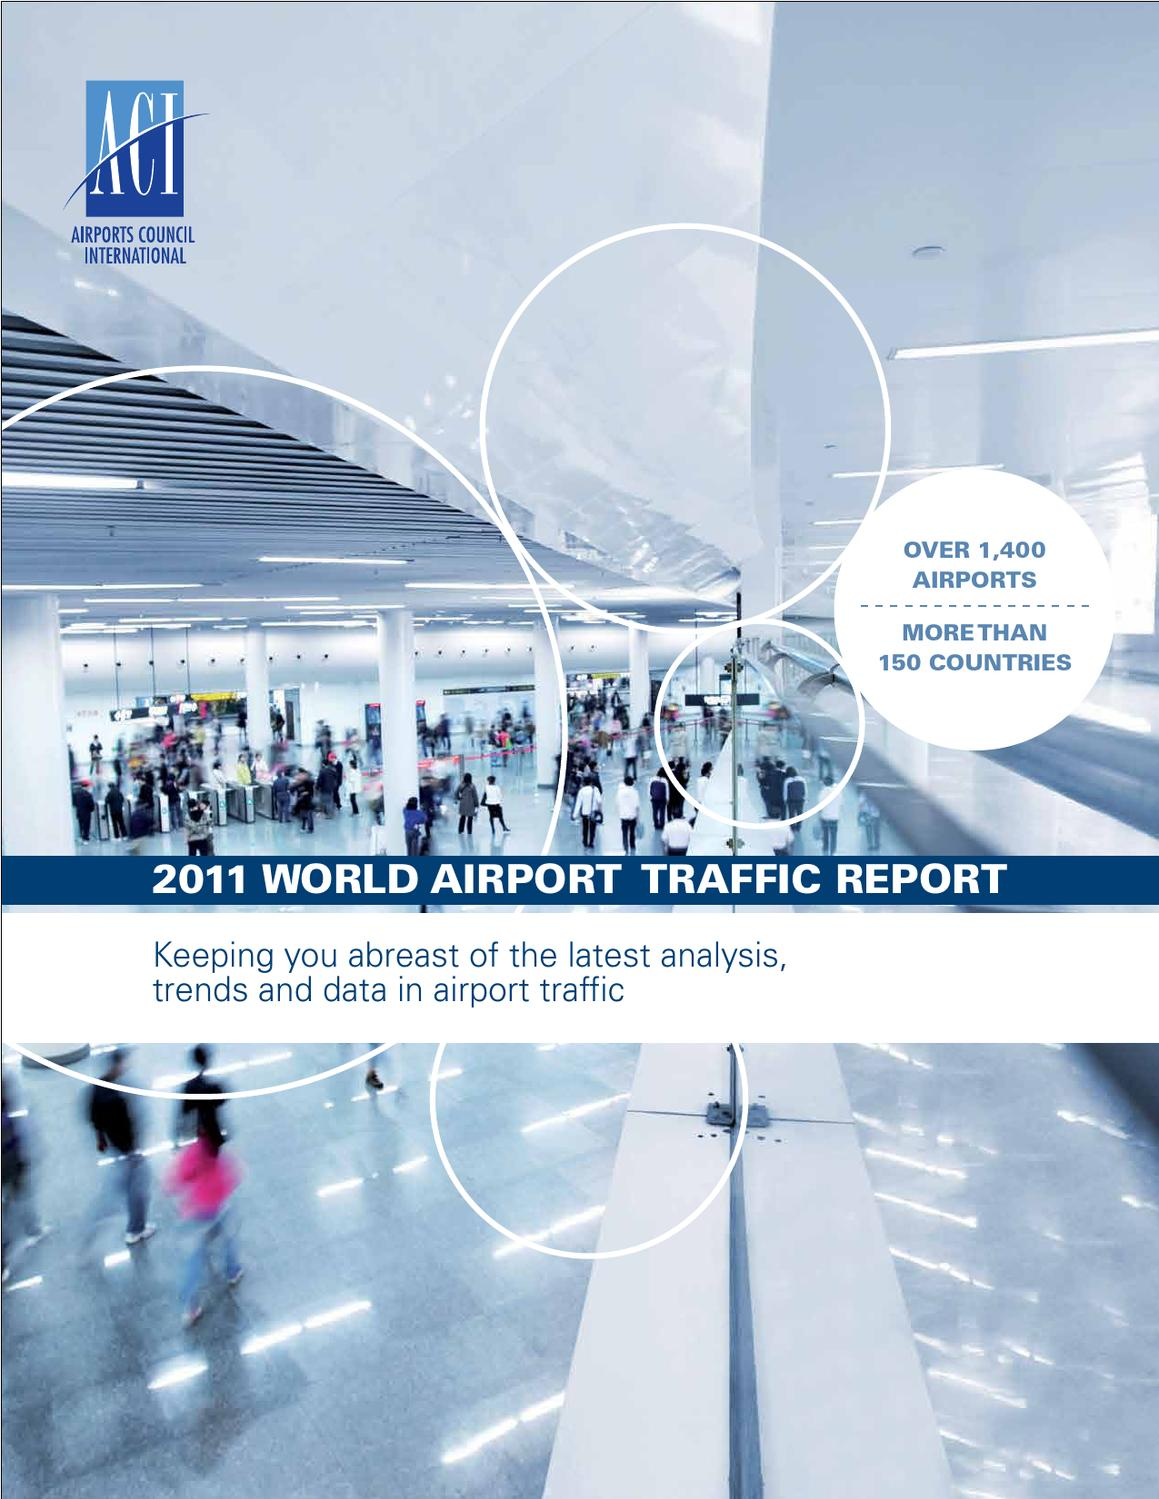 2011 ACI World Airport Traffic Report by Airports Council